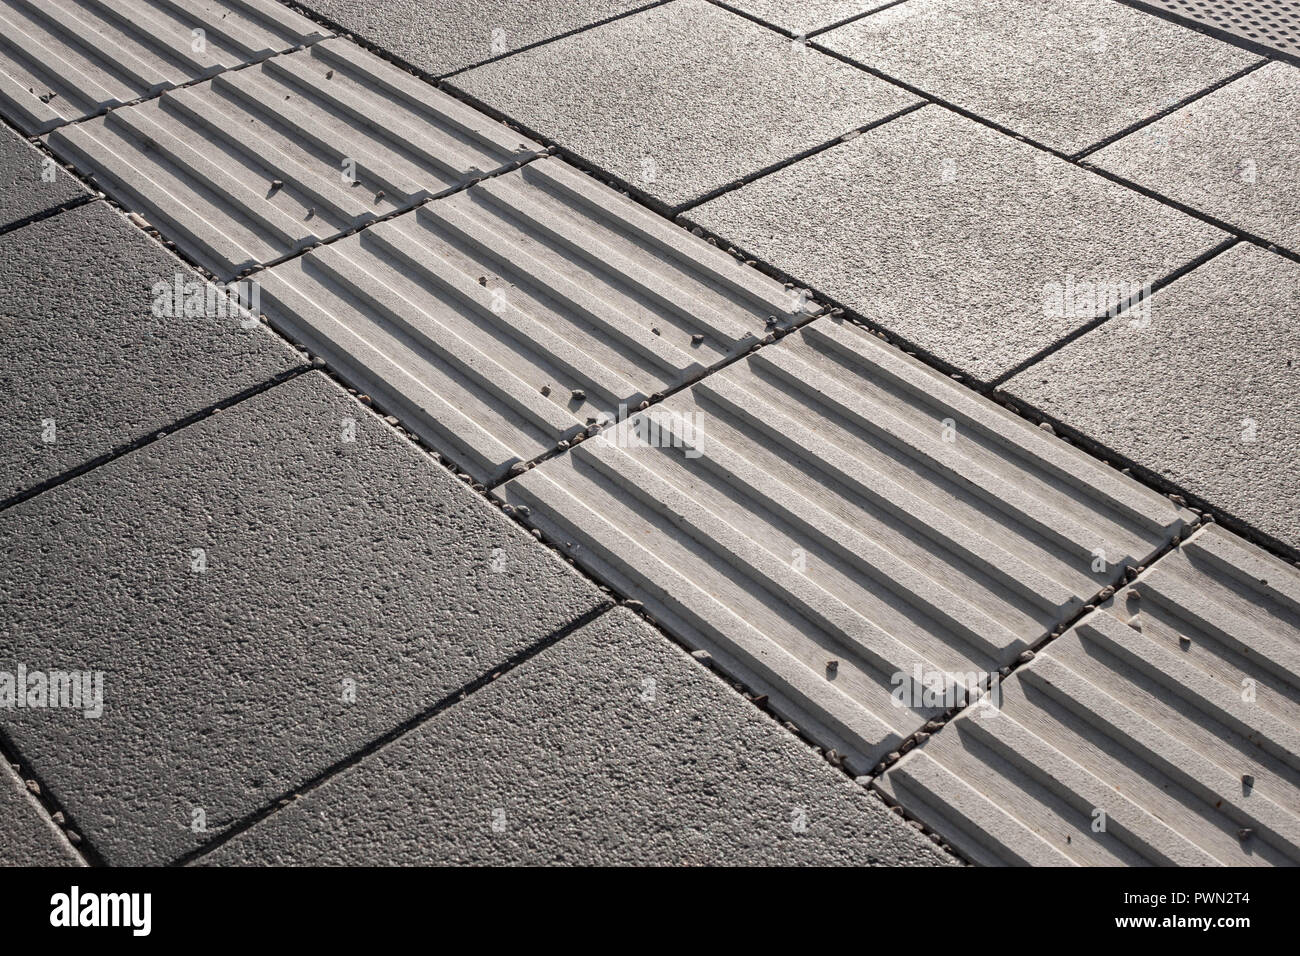 Line of hazard warning tactile paving along the edge of platform at the train station. Tactile paving assists visually impaired pedestrians - Stock Image